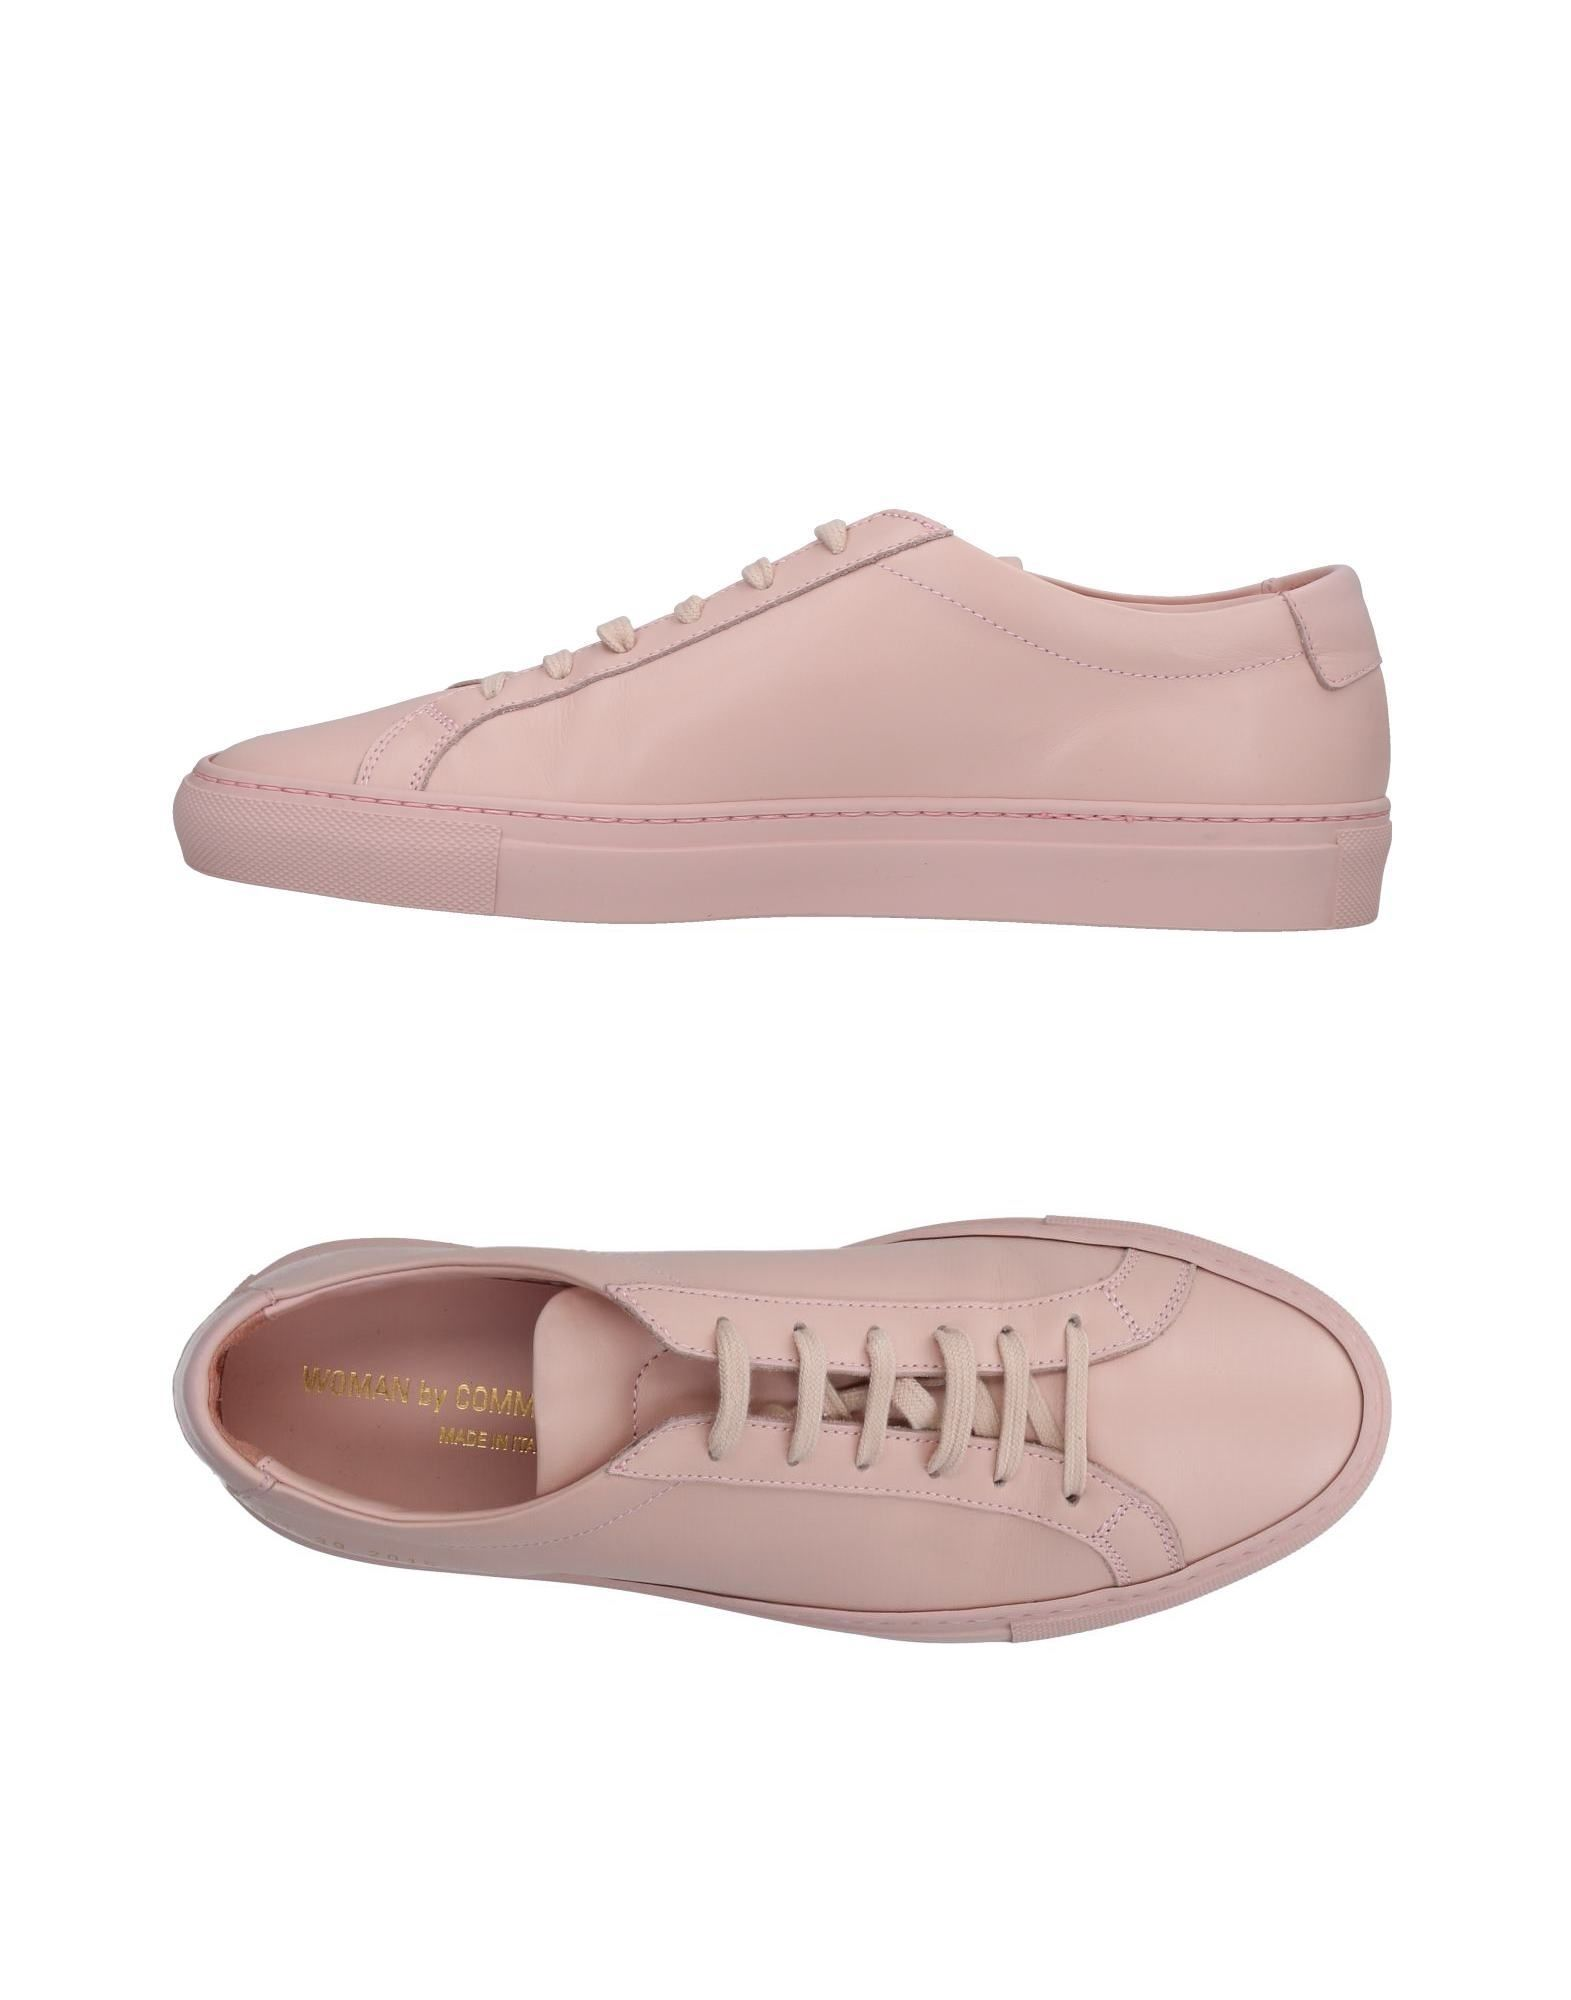 Woman By Common Projects Sneakers Damen  11314237UOGut aussehende strapazierfähige Schuhe